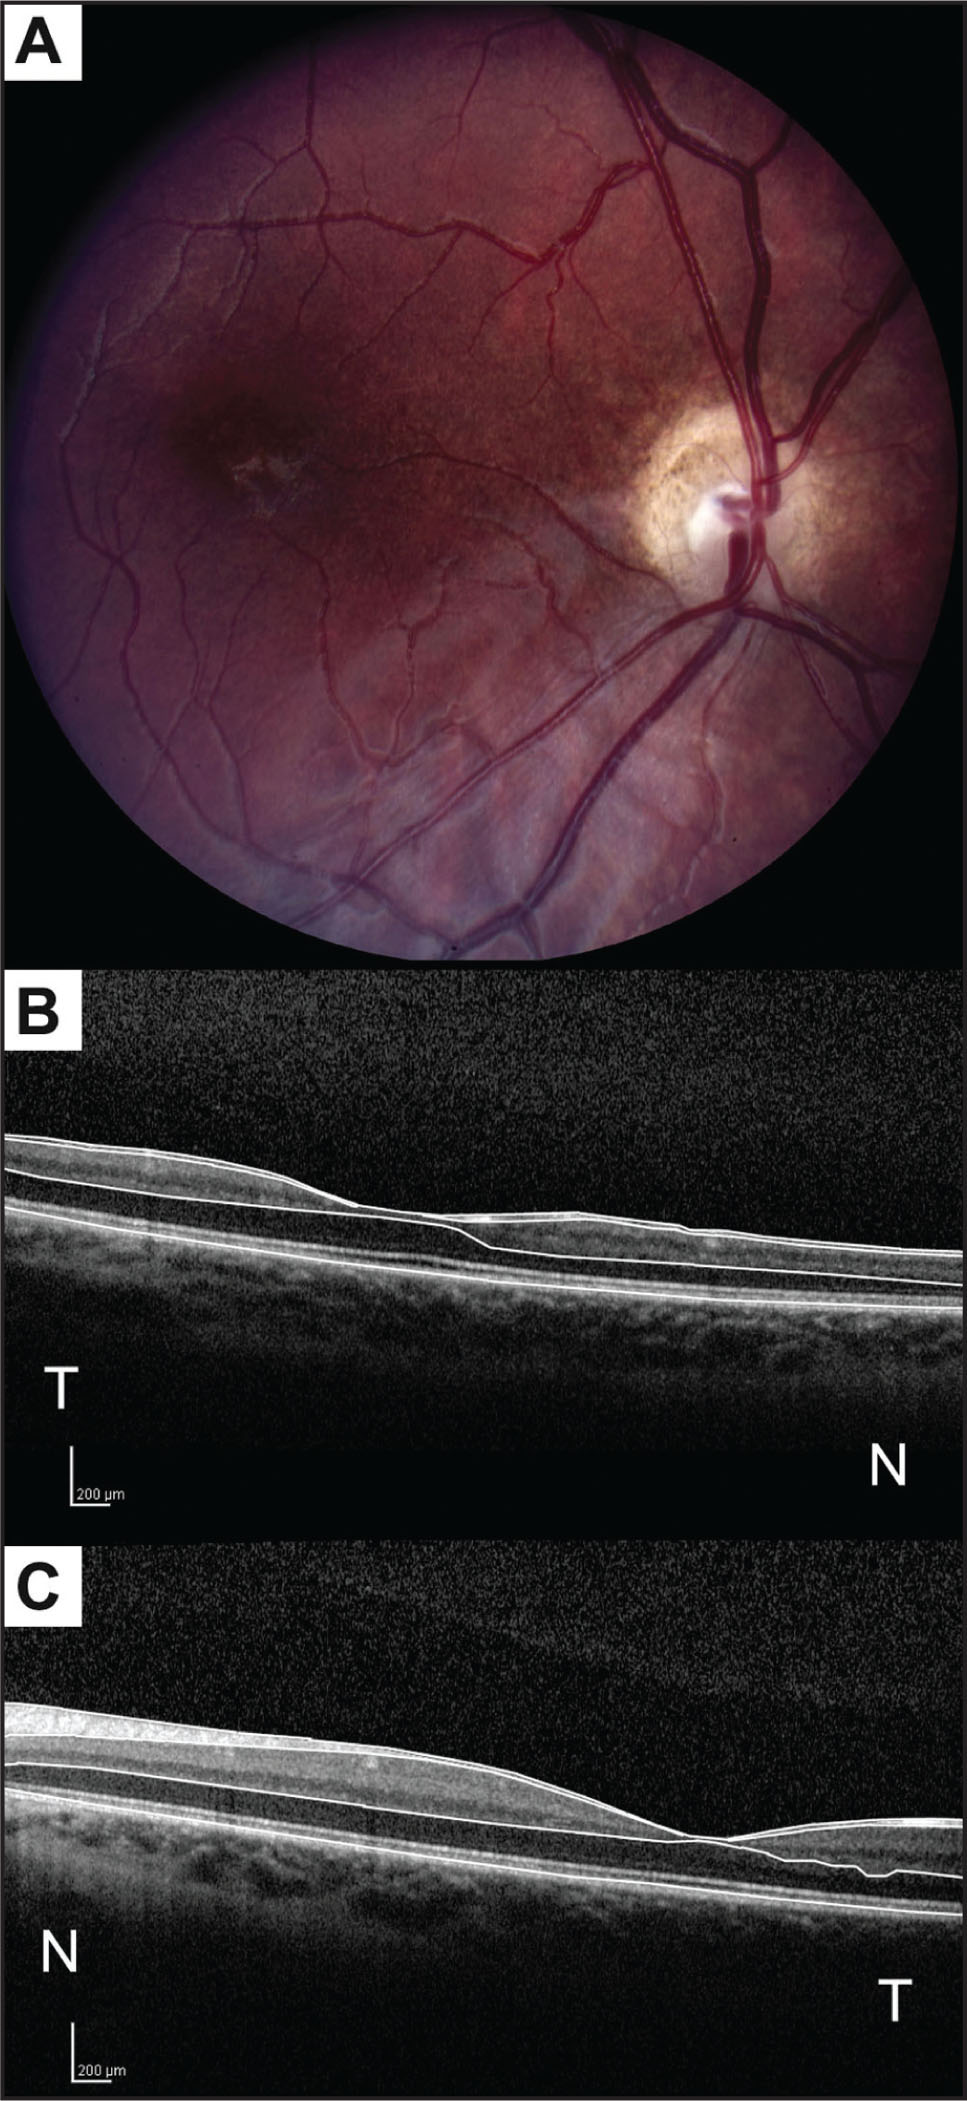 Fundus Photograph of the Right Eye (A) and Horizontal Optical Coherence Tomography (OCT) Scan Through the Fovea of the Right Eye (B) and the Left Eye (C). The Photograph Depicts Optic Nerve Head Hypoplasia and Pallor, a Double-Ring Sign, and Pigmentary Changes in the Central Macula. Examination of the Right Eye with Spectral-Domain OCT (SD-OCT) (B) Shows a Difference in Retinal Nerve Fiber Layer and a Difference in All Retinal Layers in the Central Macula, Most Noticeably in the Inner Layers, but also Affecting the Outer Layers when Compared to SD-OCT of the Left Eye (C). Manual Segmentation Lines (B and C) Delineate the Inner Limiting Membrane, Posterior Border of the Nerve Fiber Layer, Posterior Border of the Outer Plexiform Layer, and the Neural Retina–Retinal Pigment Epithelium Interface. N = Nasal; and T = Temporal to the Fovea.